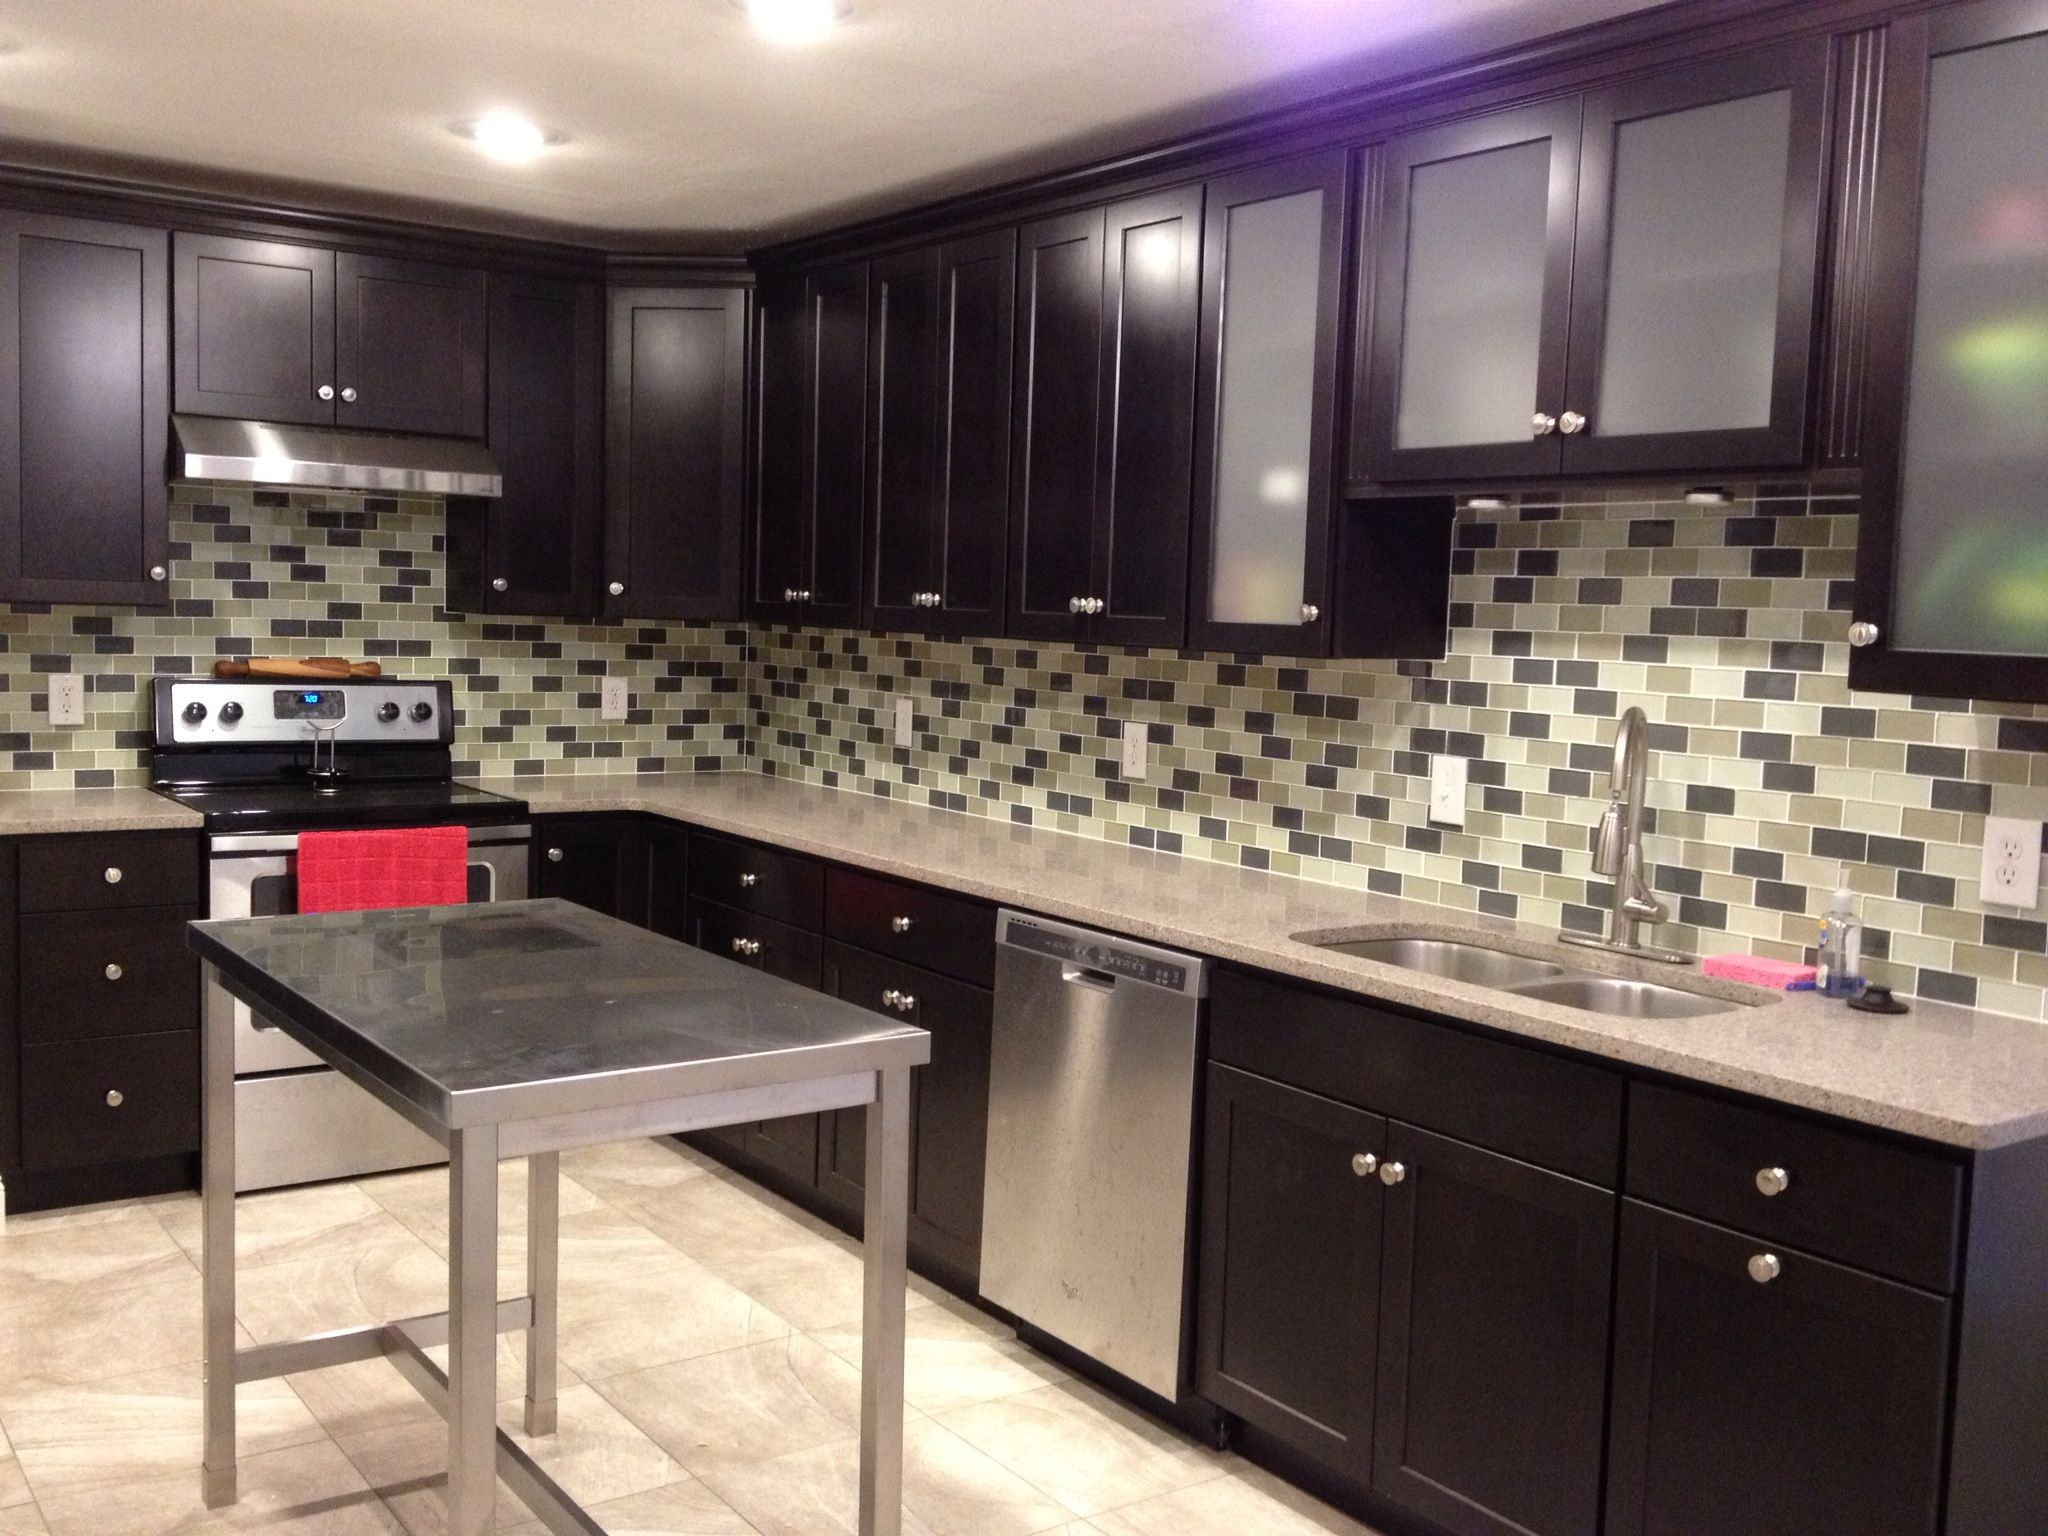 Java Kitchen Cabinets With Subway Tile Backsplash And Stainless Steel Appliances Kitchen Design Kitchen Cabinets Kitchen